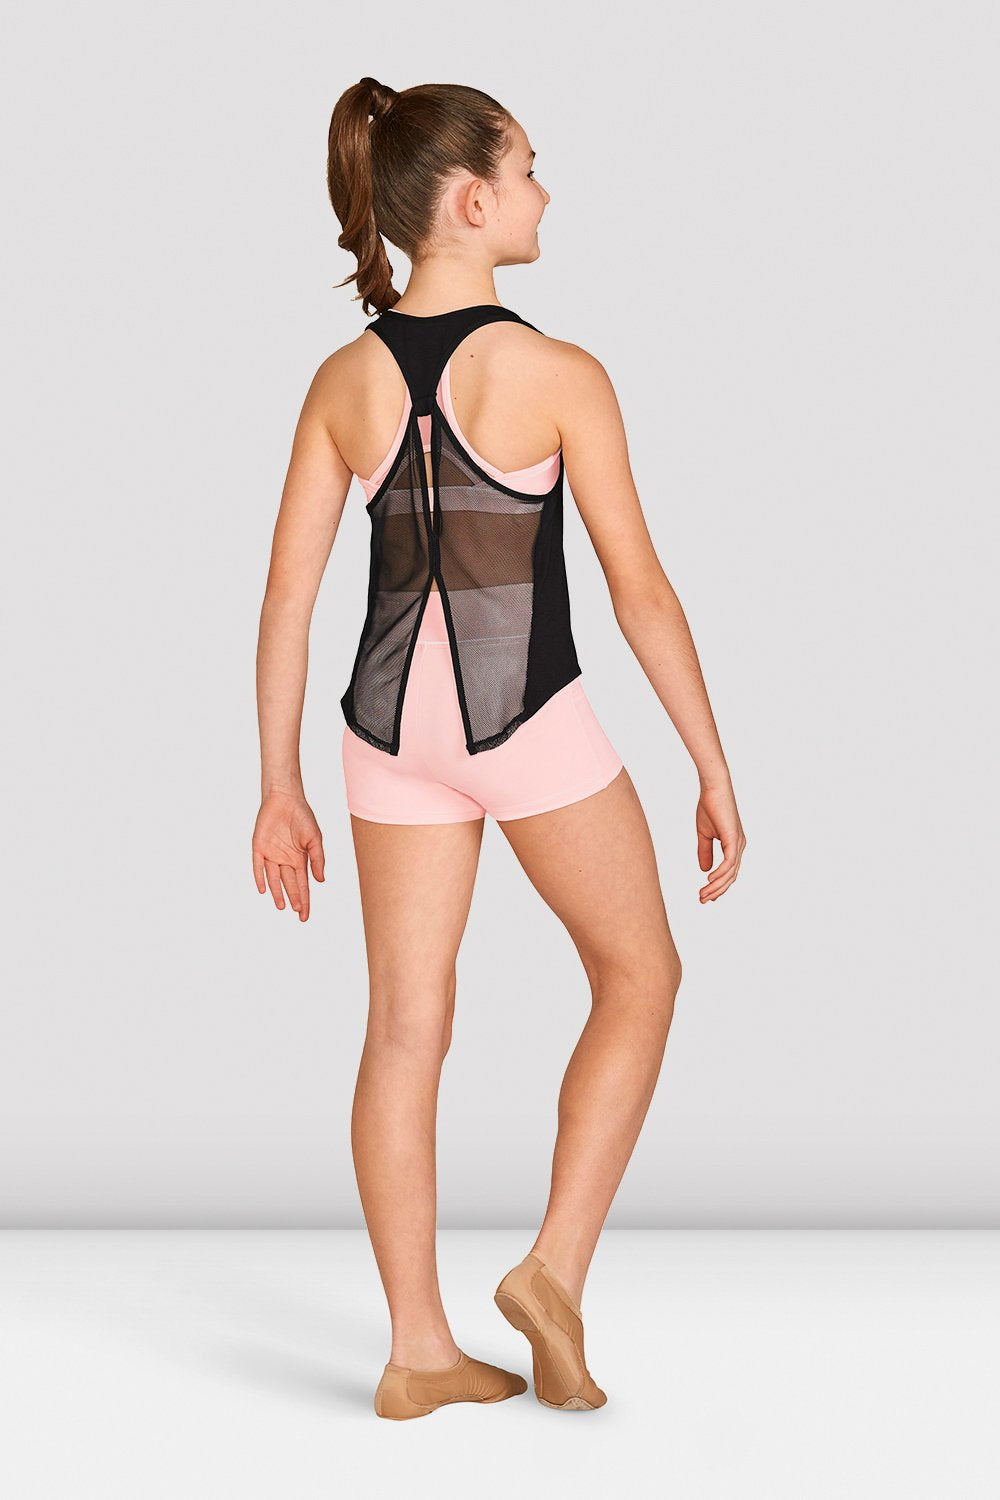 Girls Mesh Tie Back Tank Top - BLOCH US